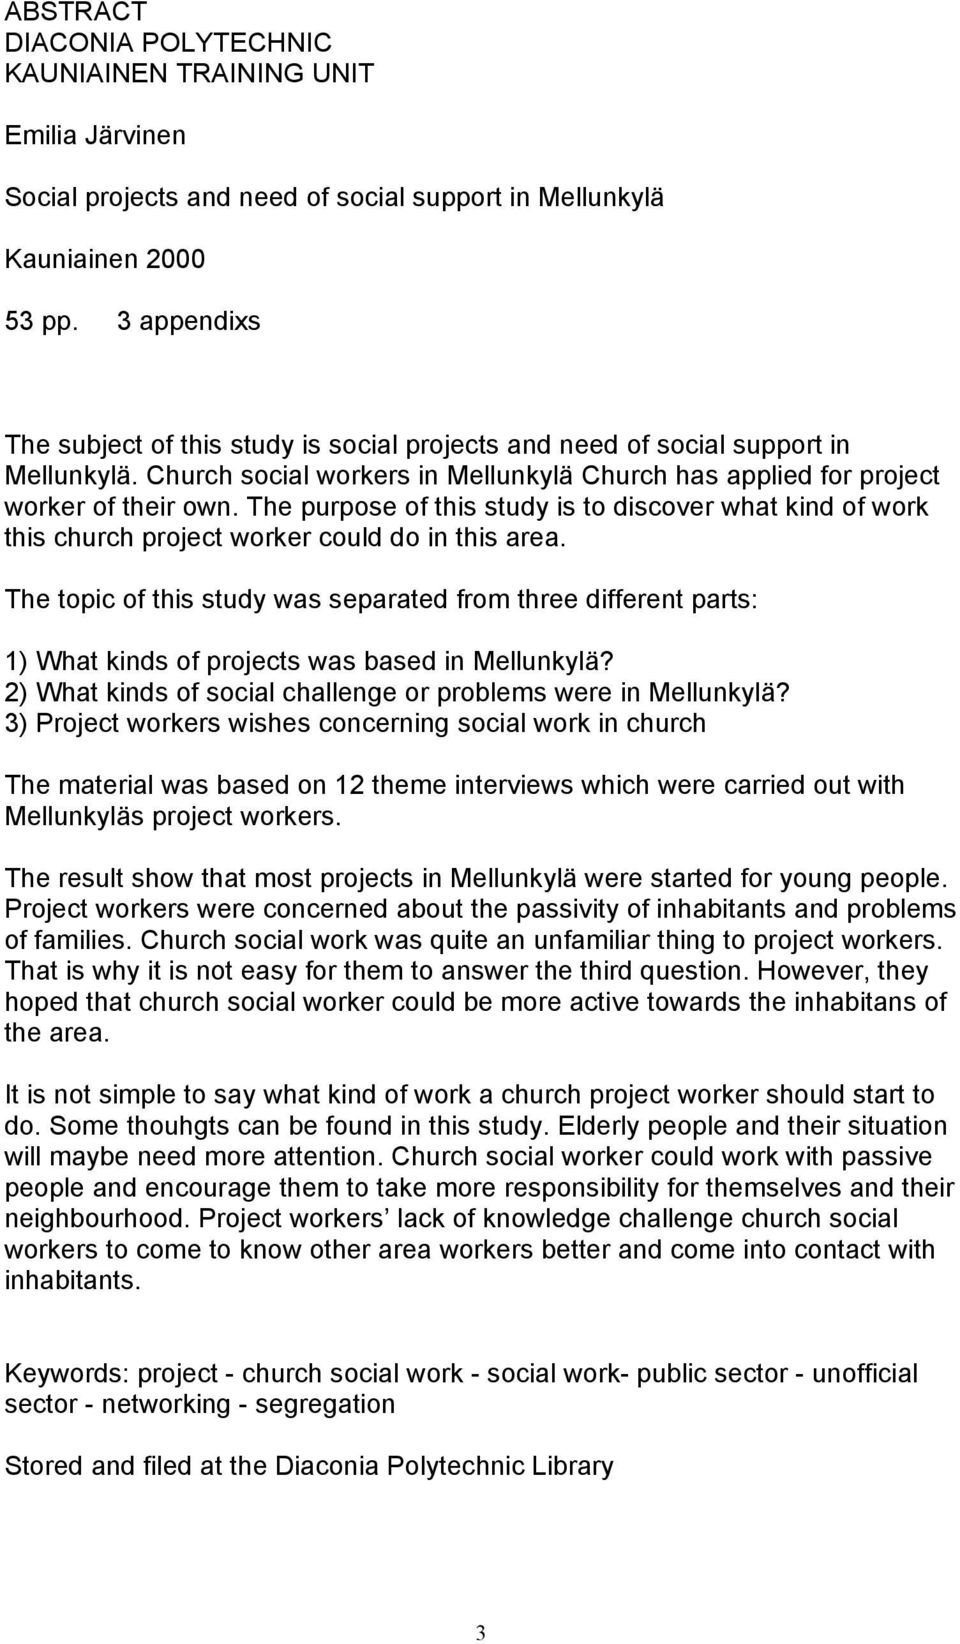 The purpose of this study is to discover what kind of work this church project worker could do in this area.